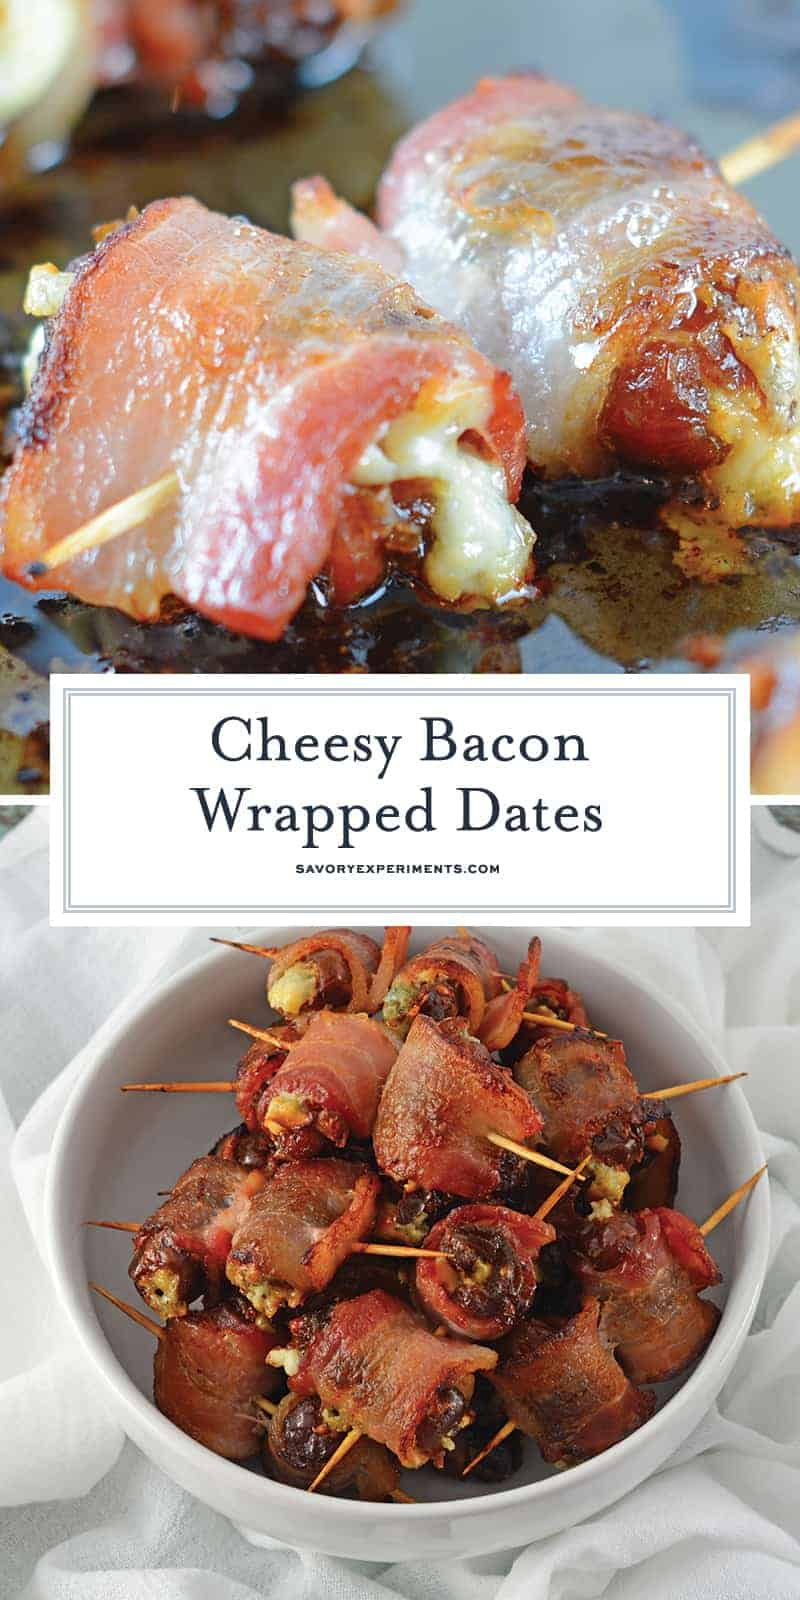 Bacon Wrapped Dates are an easy, 4 ingredient appetizer or snack perfect for watching the big game in your pajamas or a fancy cocktail party. #dateappetizers #baconwrappeddates www.savoryexperiments.com